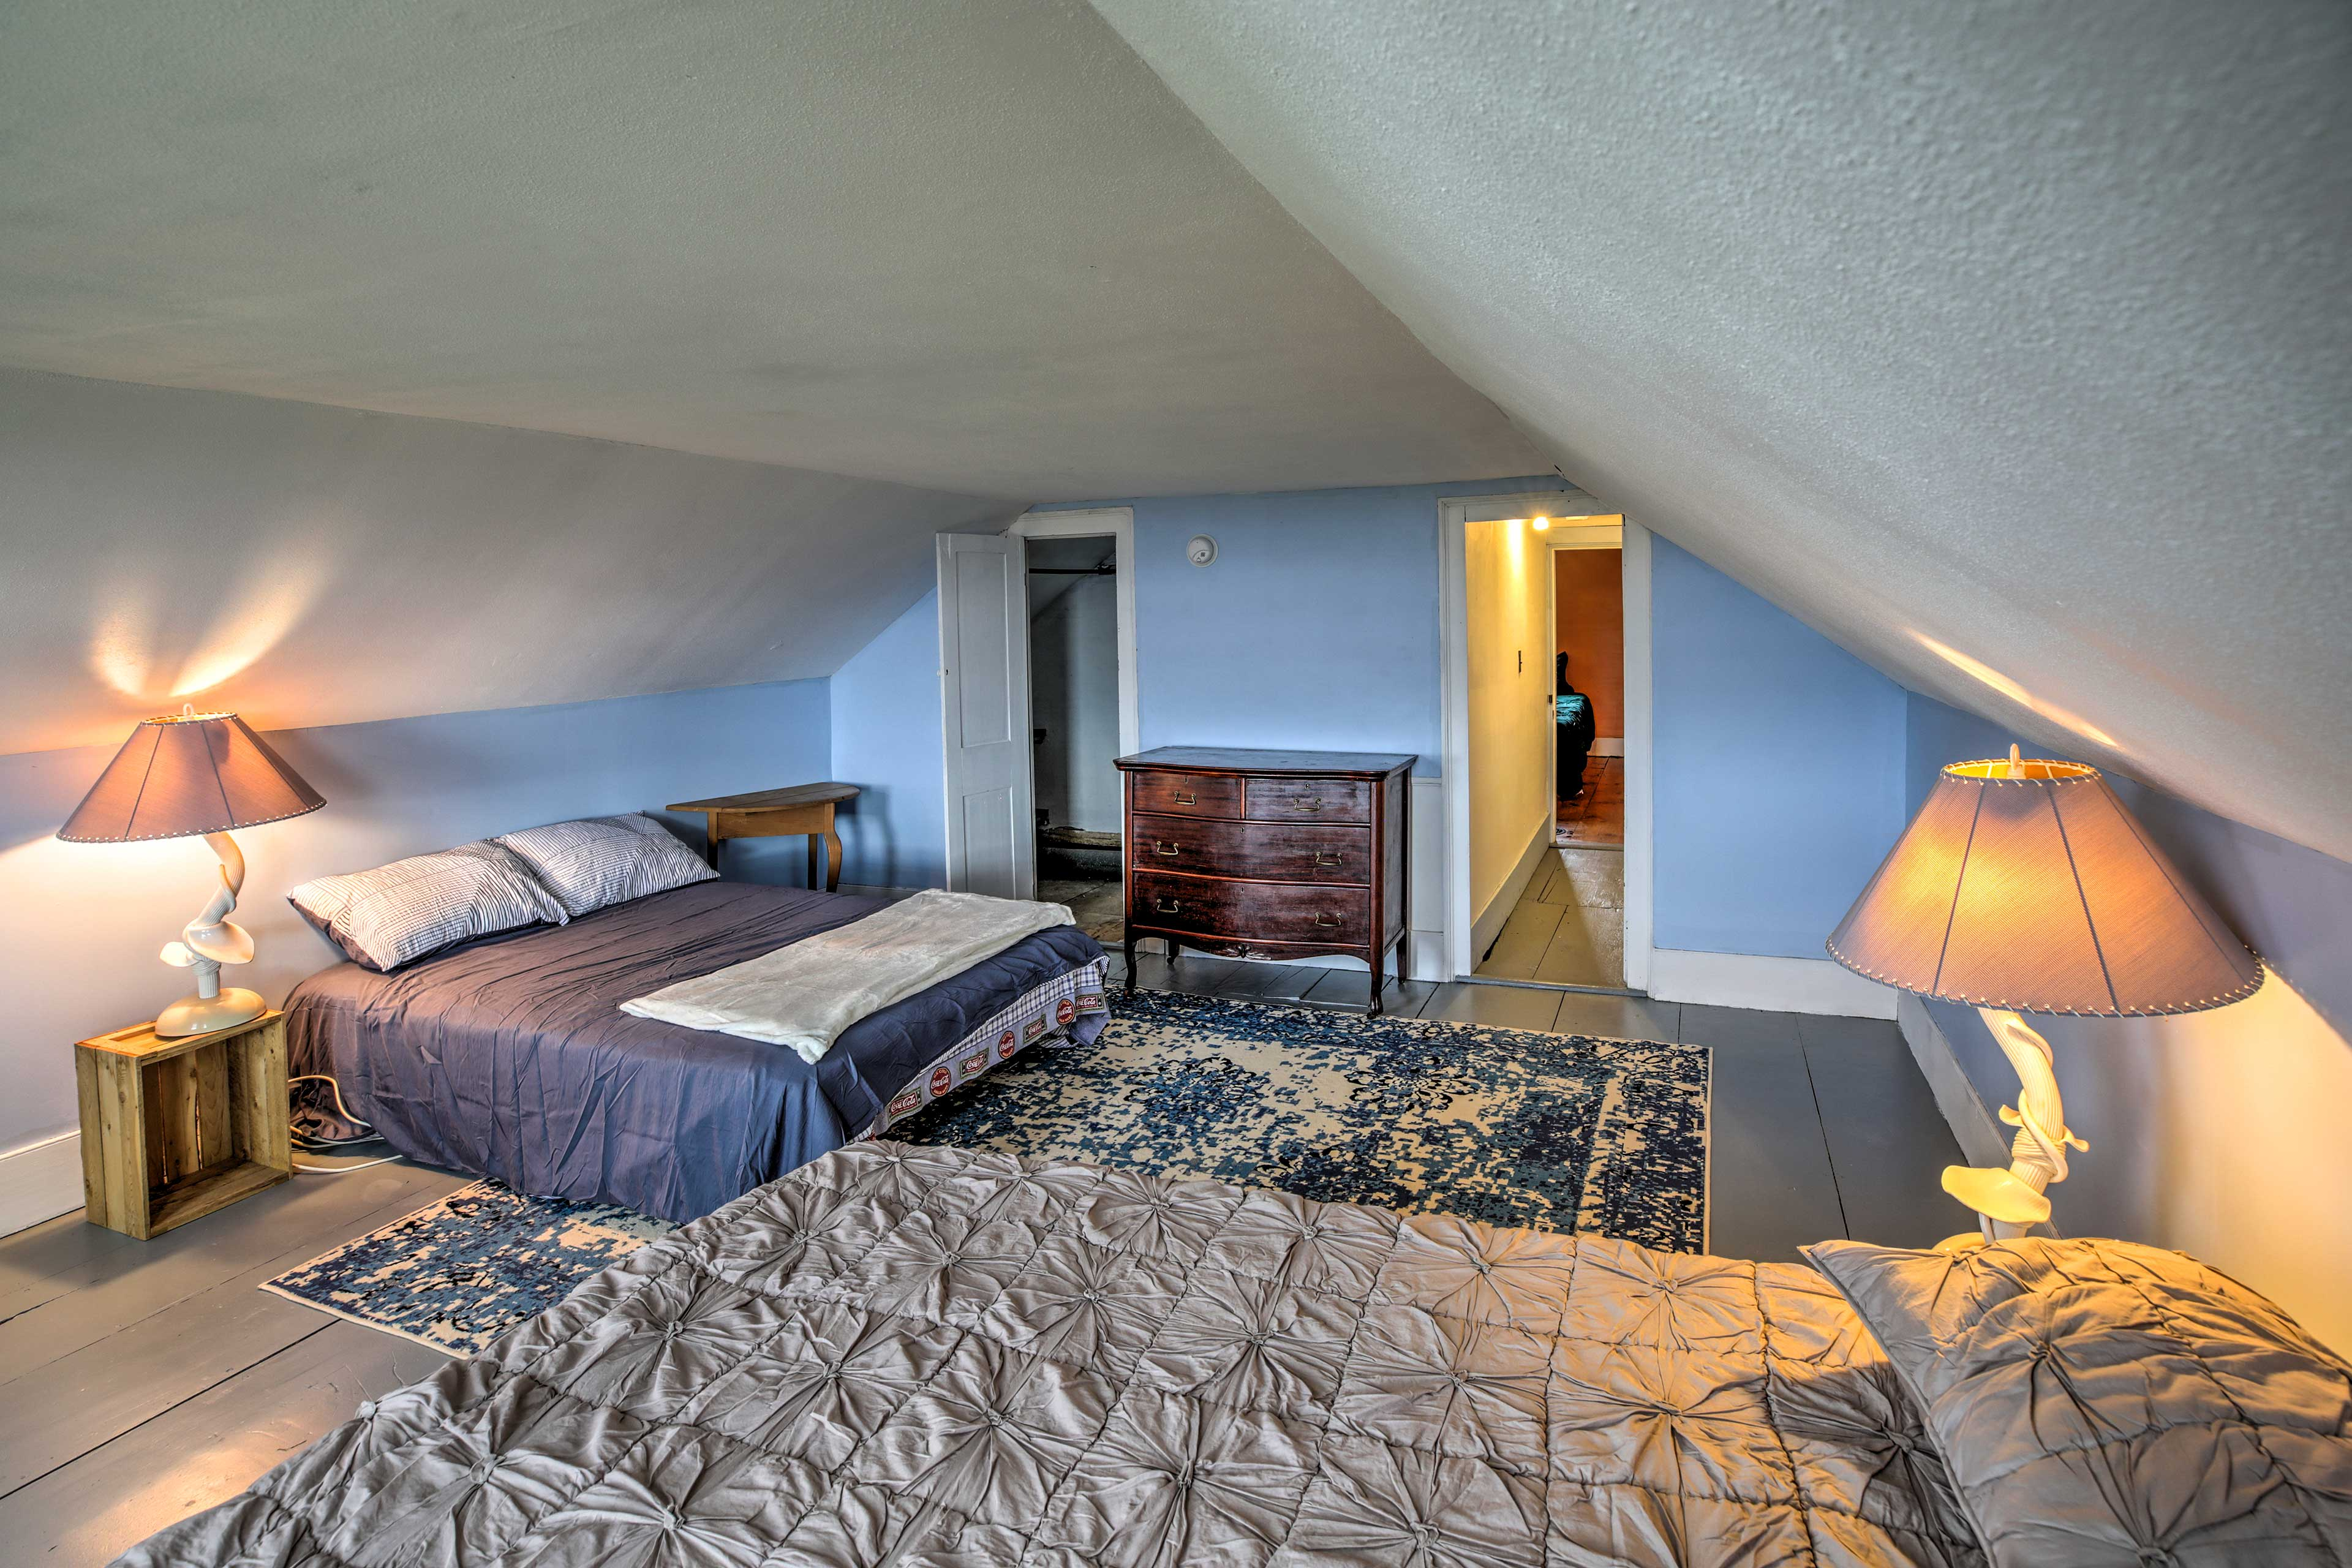 The third bedroom has a queen bed and a full bed.